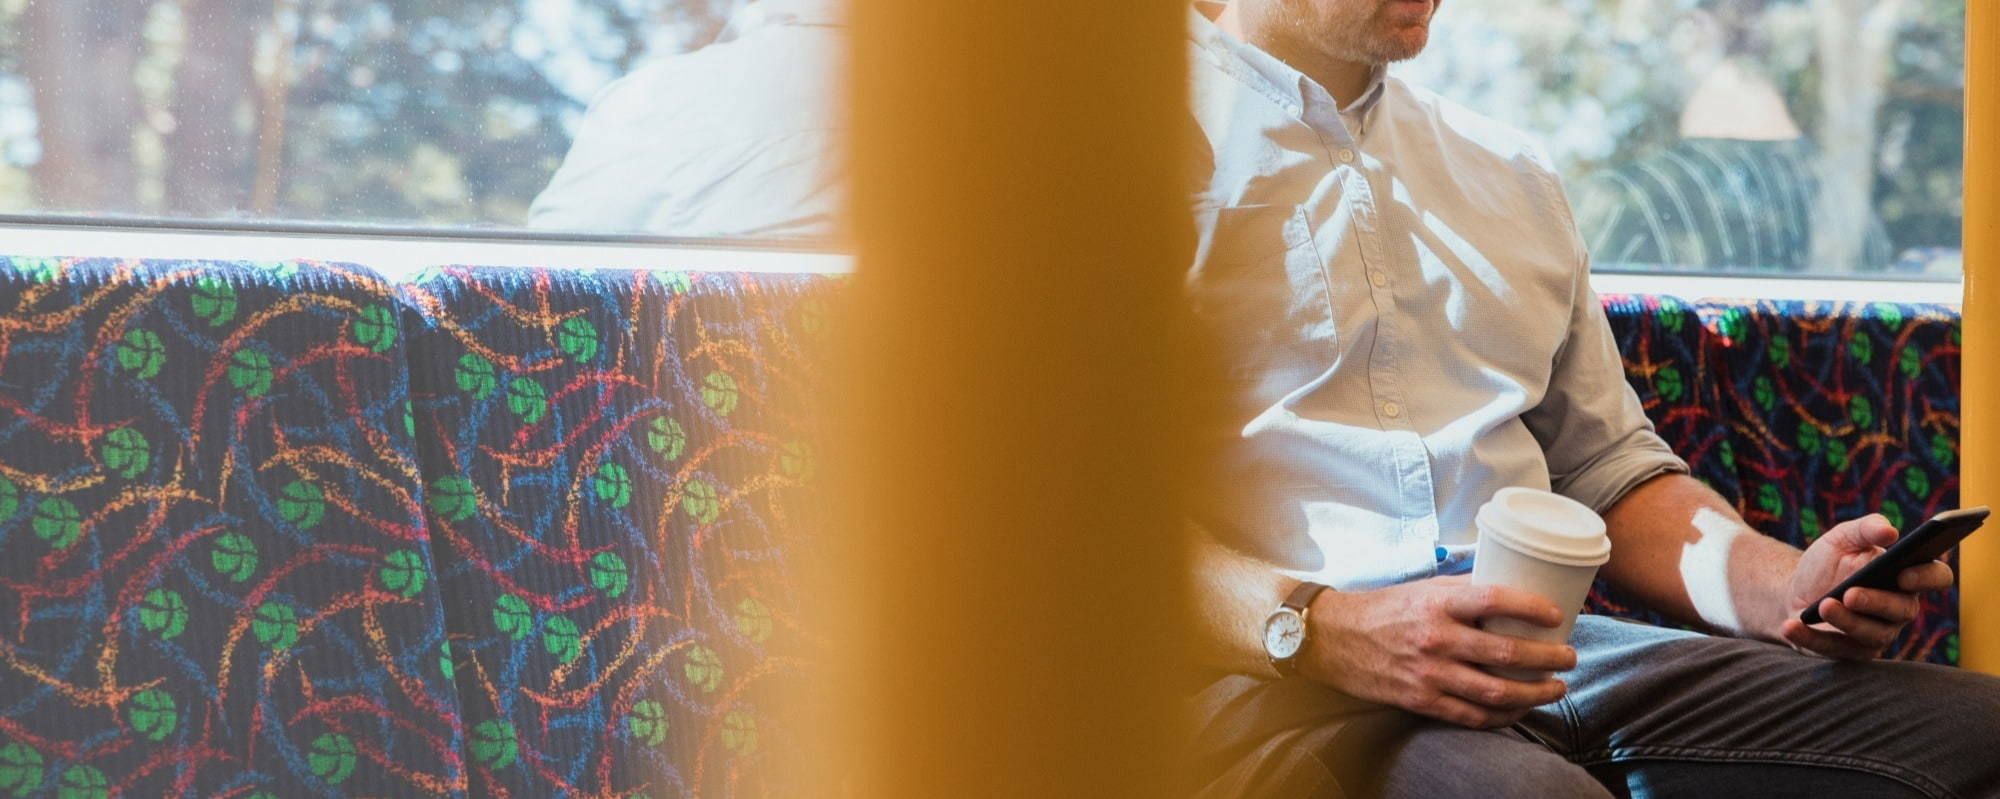 A male looking at his phone on a train